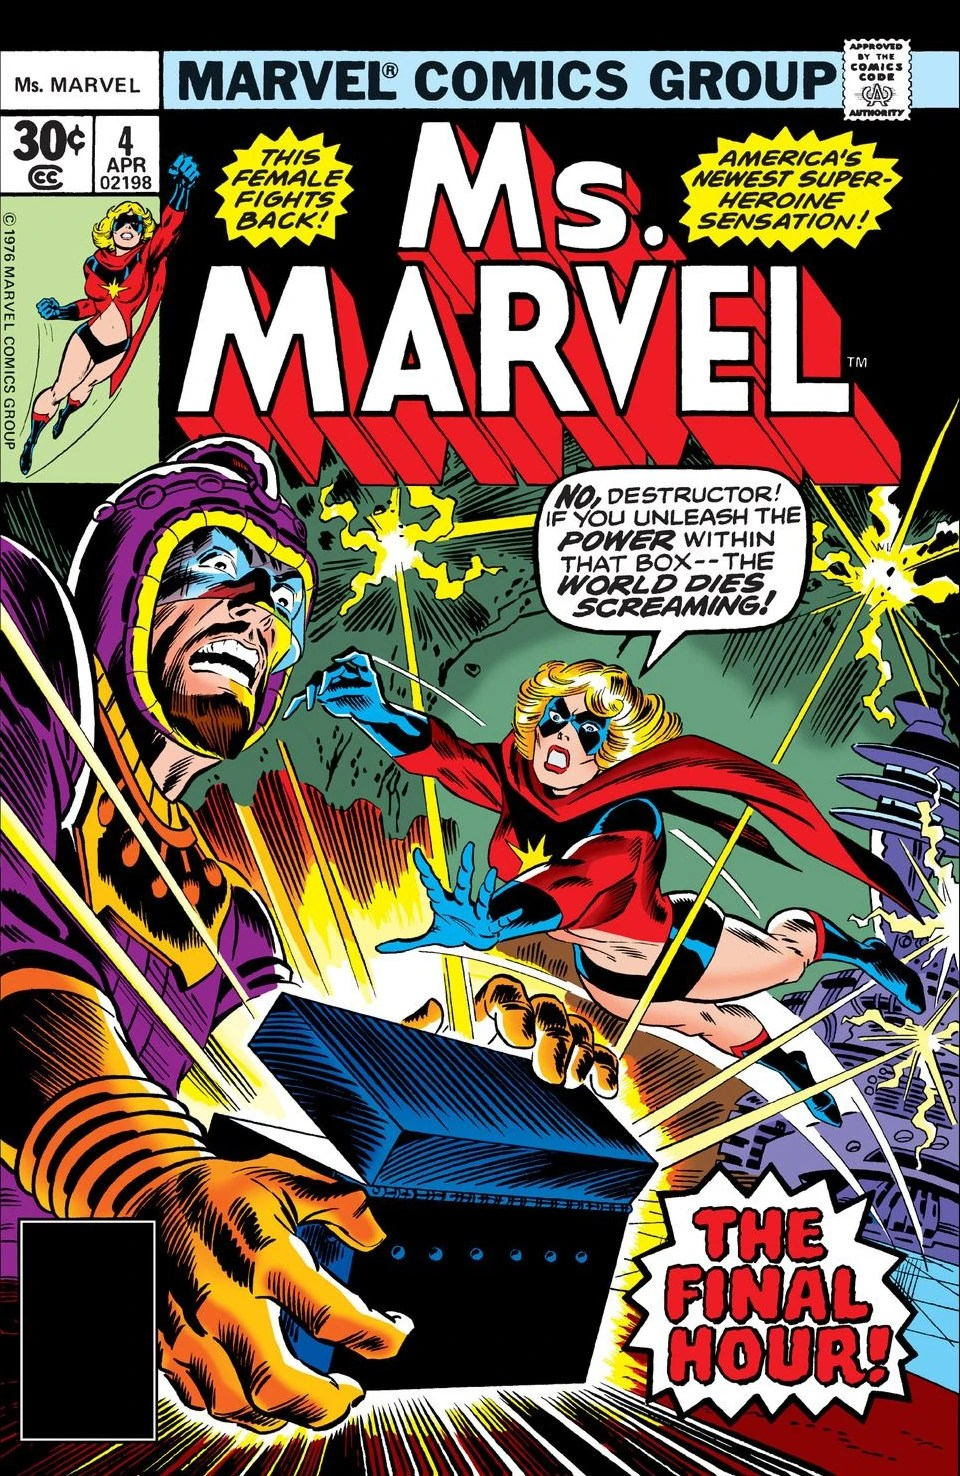 Ms Marvel Vol 1 4  Marvel Database  FANDOM powered by Wikia